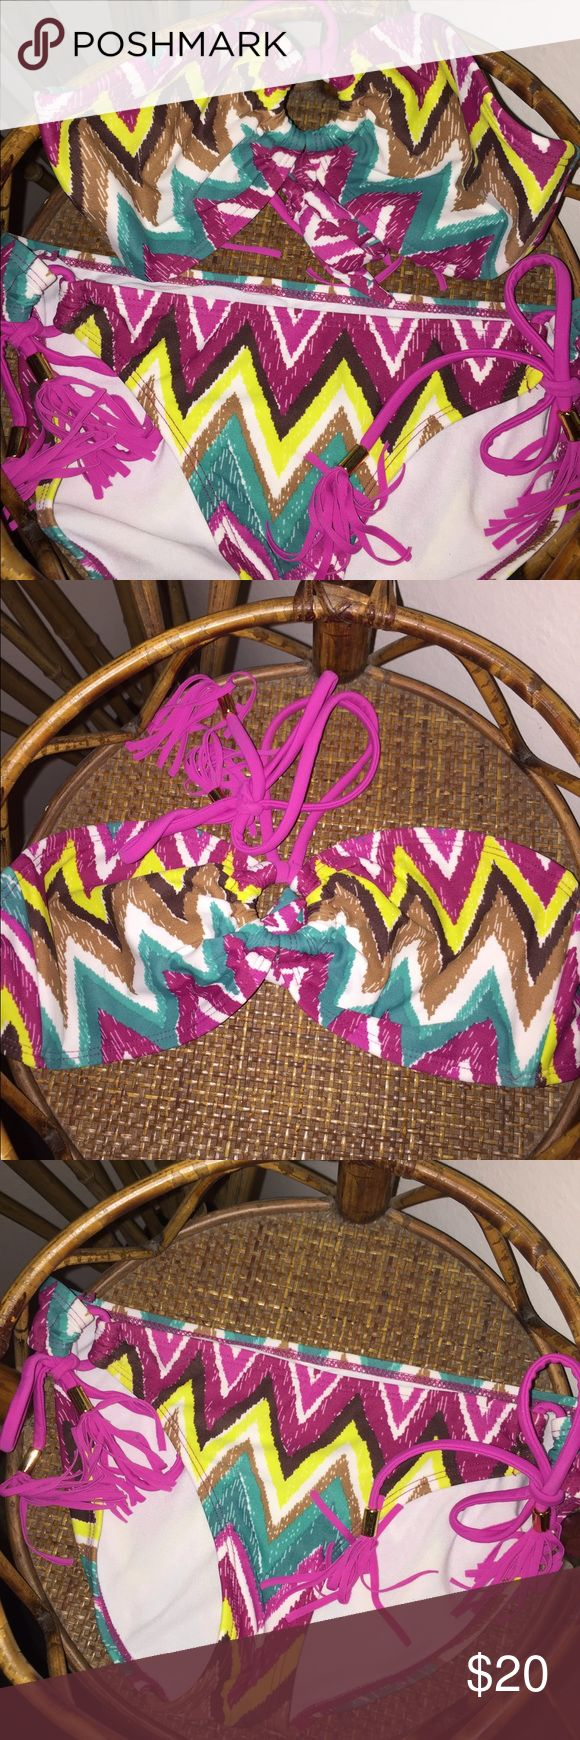 ⬇️PRICE DROP⬇️Aztec Bikini This 2-Piece Bikini comes BRAND NEW without tags. Super cute pink and green Aztec design. Bandeau top with neck ties and medium rise bottoms with side ties. This is a size small and would fit up to a B cup comfortably. Really cute!!! My prices fluctuate from time to time. Catch them when prices are low!❤️ Swim Bikinis